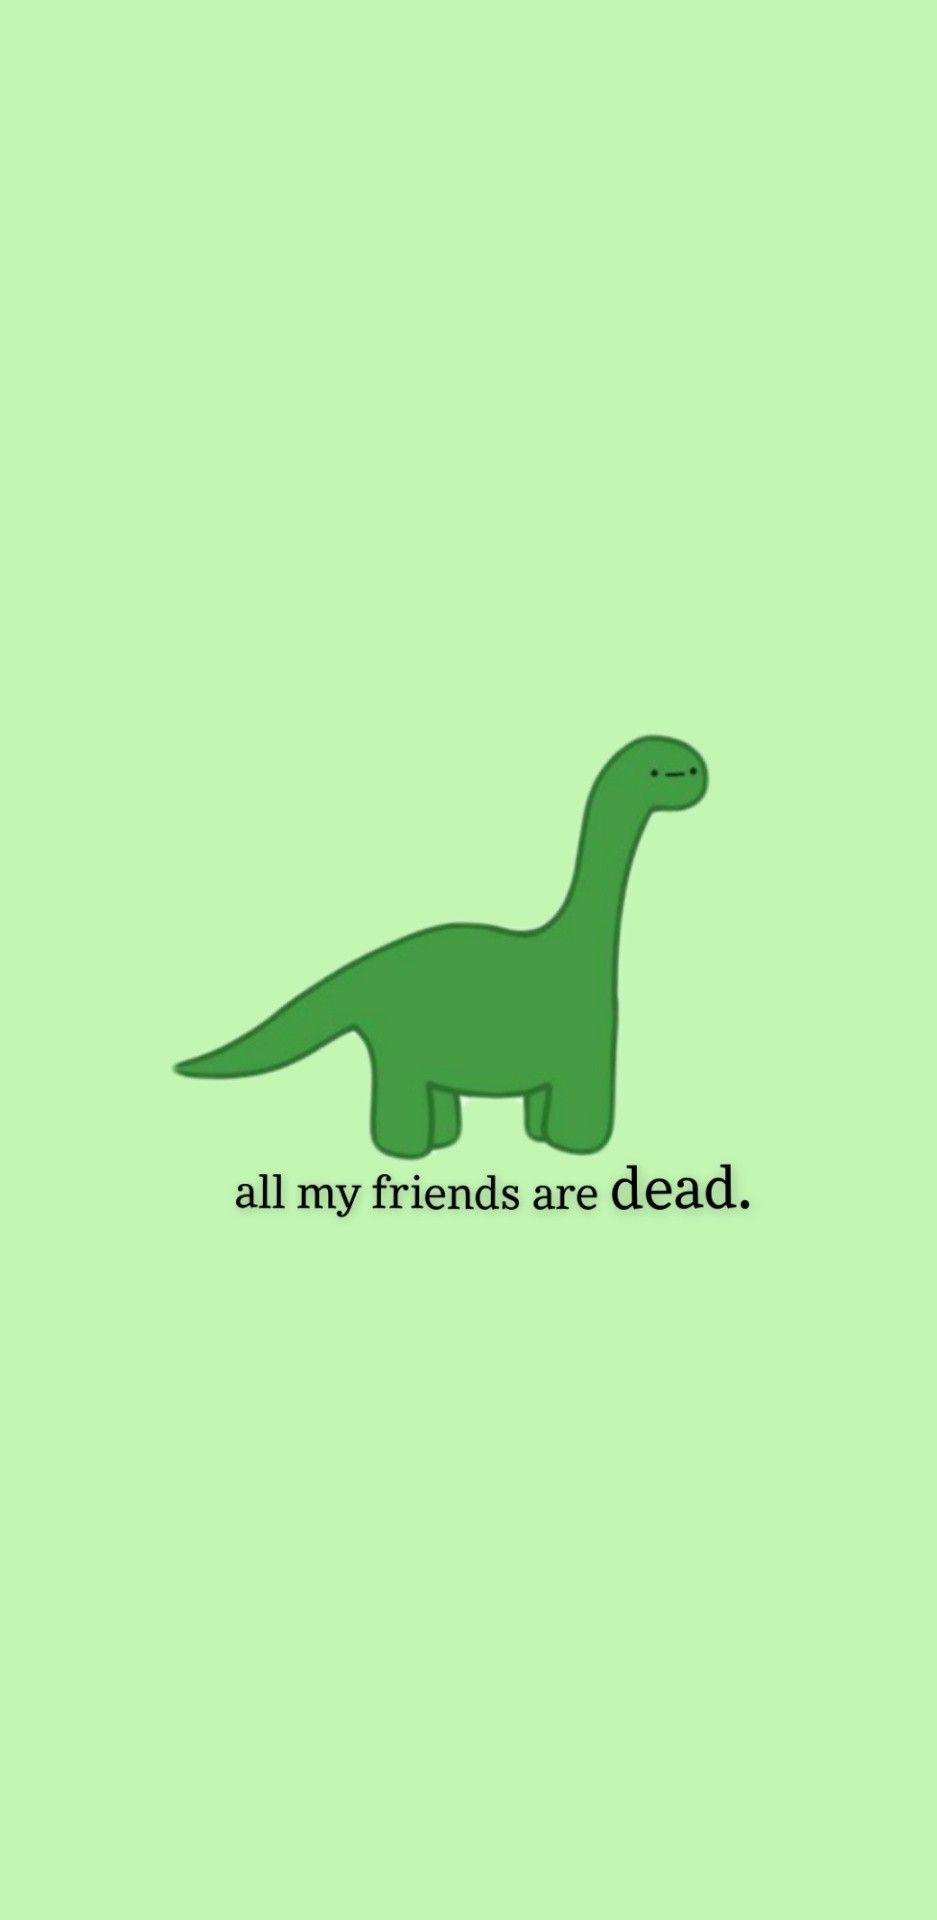 Dinosaur Images Hd To Free Download For Ios Wallpapers Cute Pics